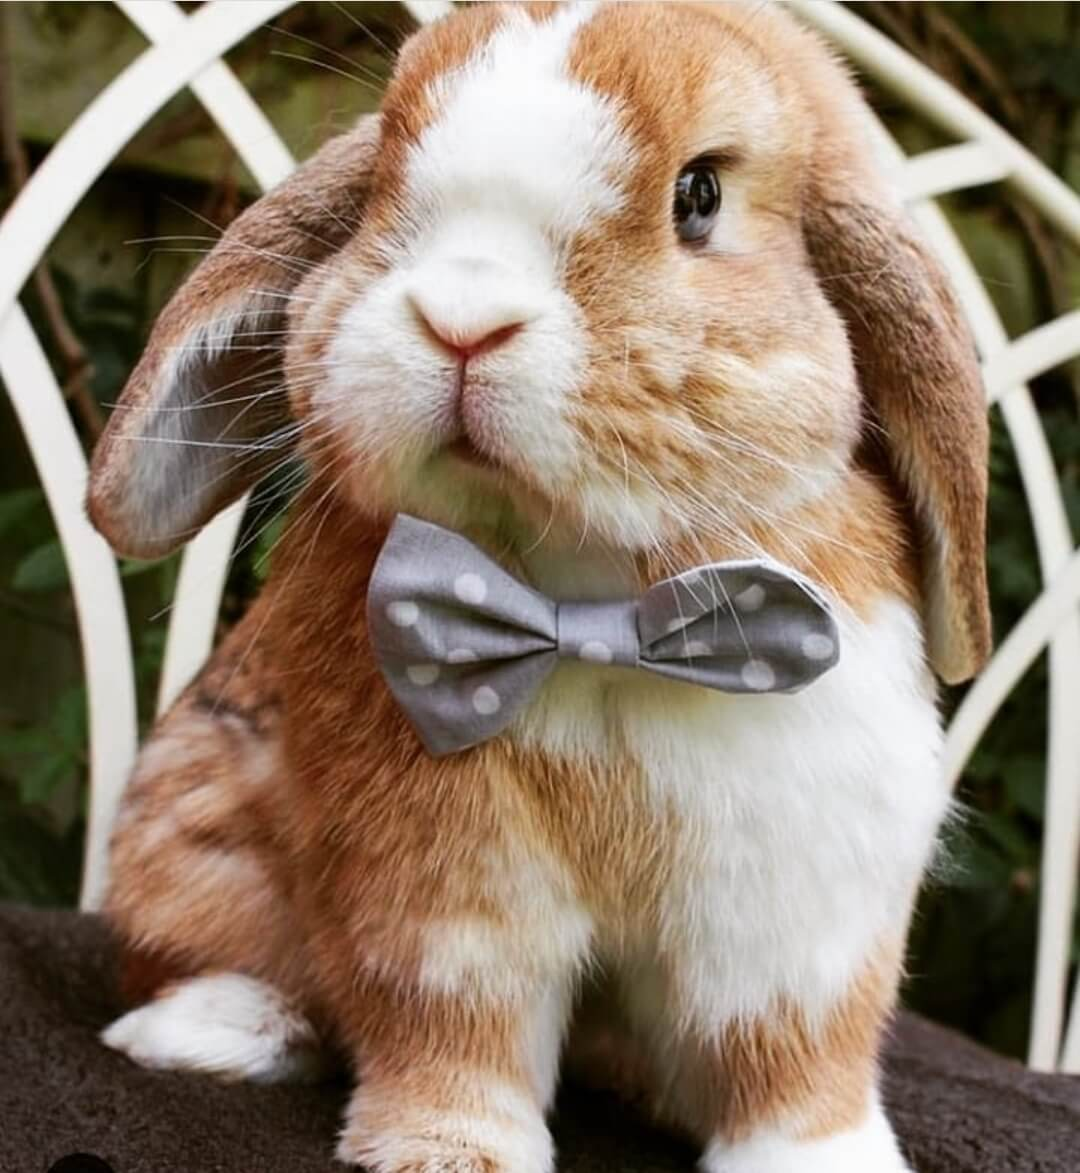 bunny cute funny bunnies allthestufficareabout today 1080 stuff care